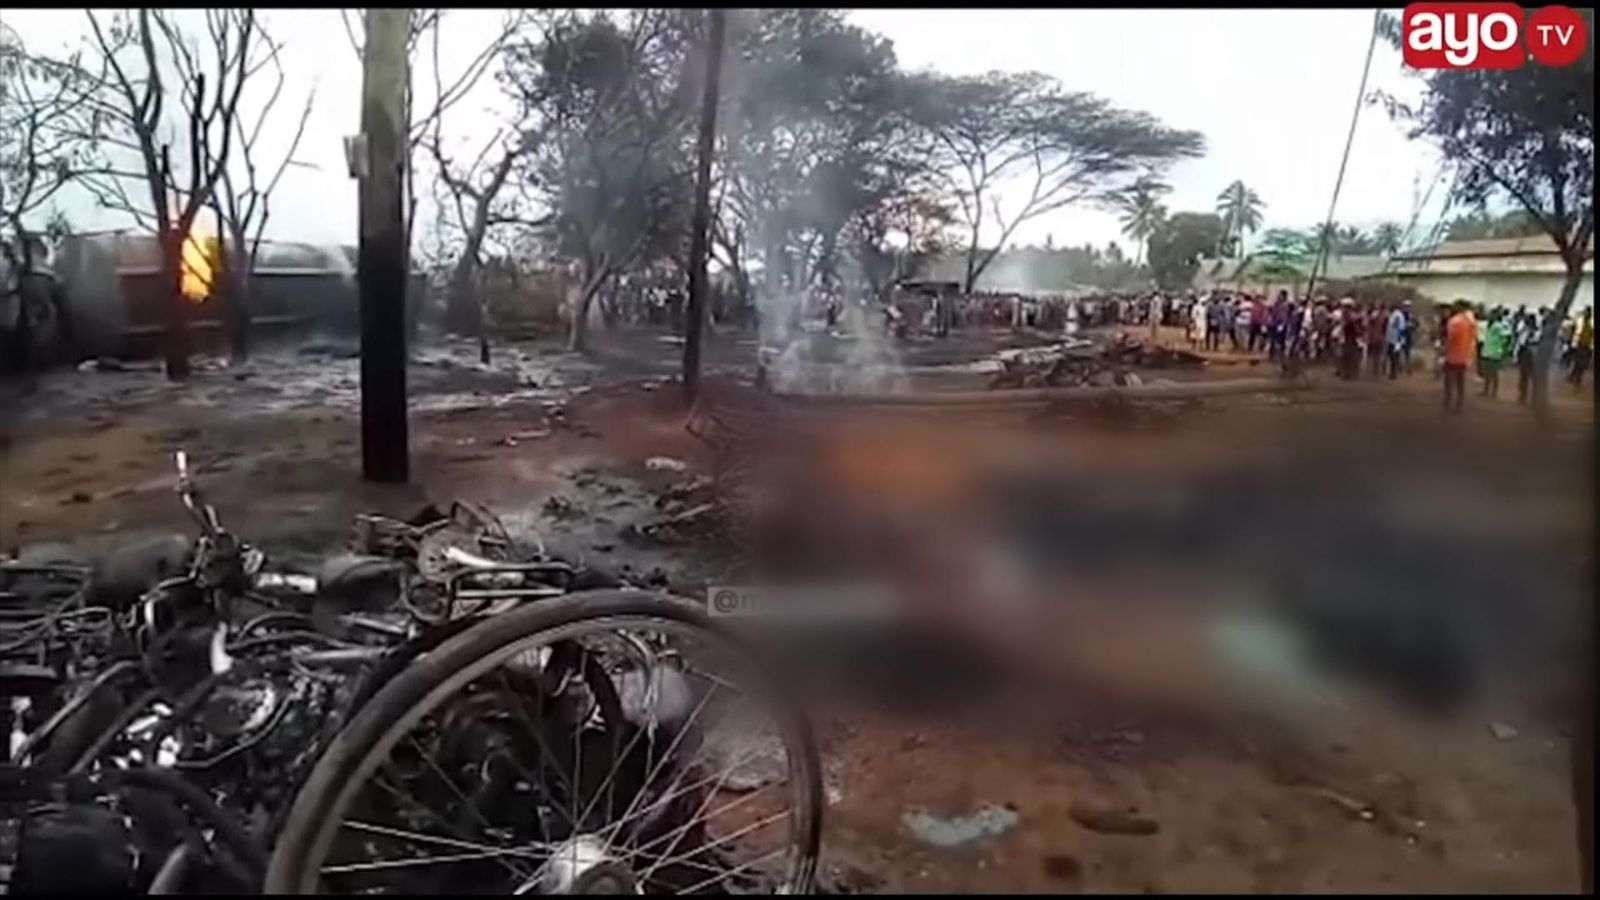 At least 62 people burned to death after fuel tanker explosion in Tanzania